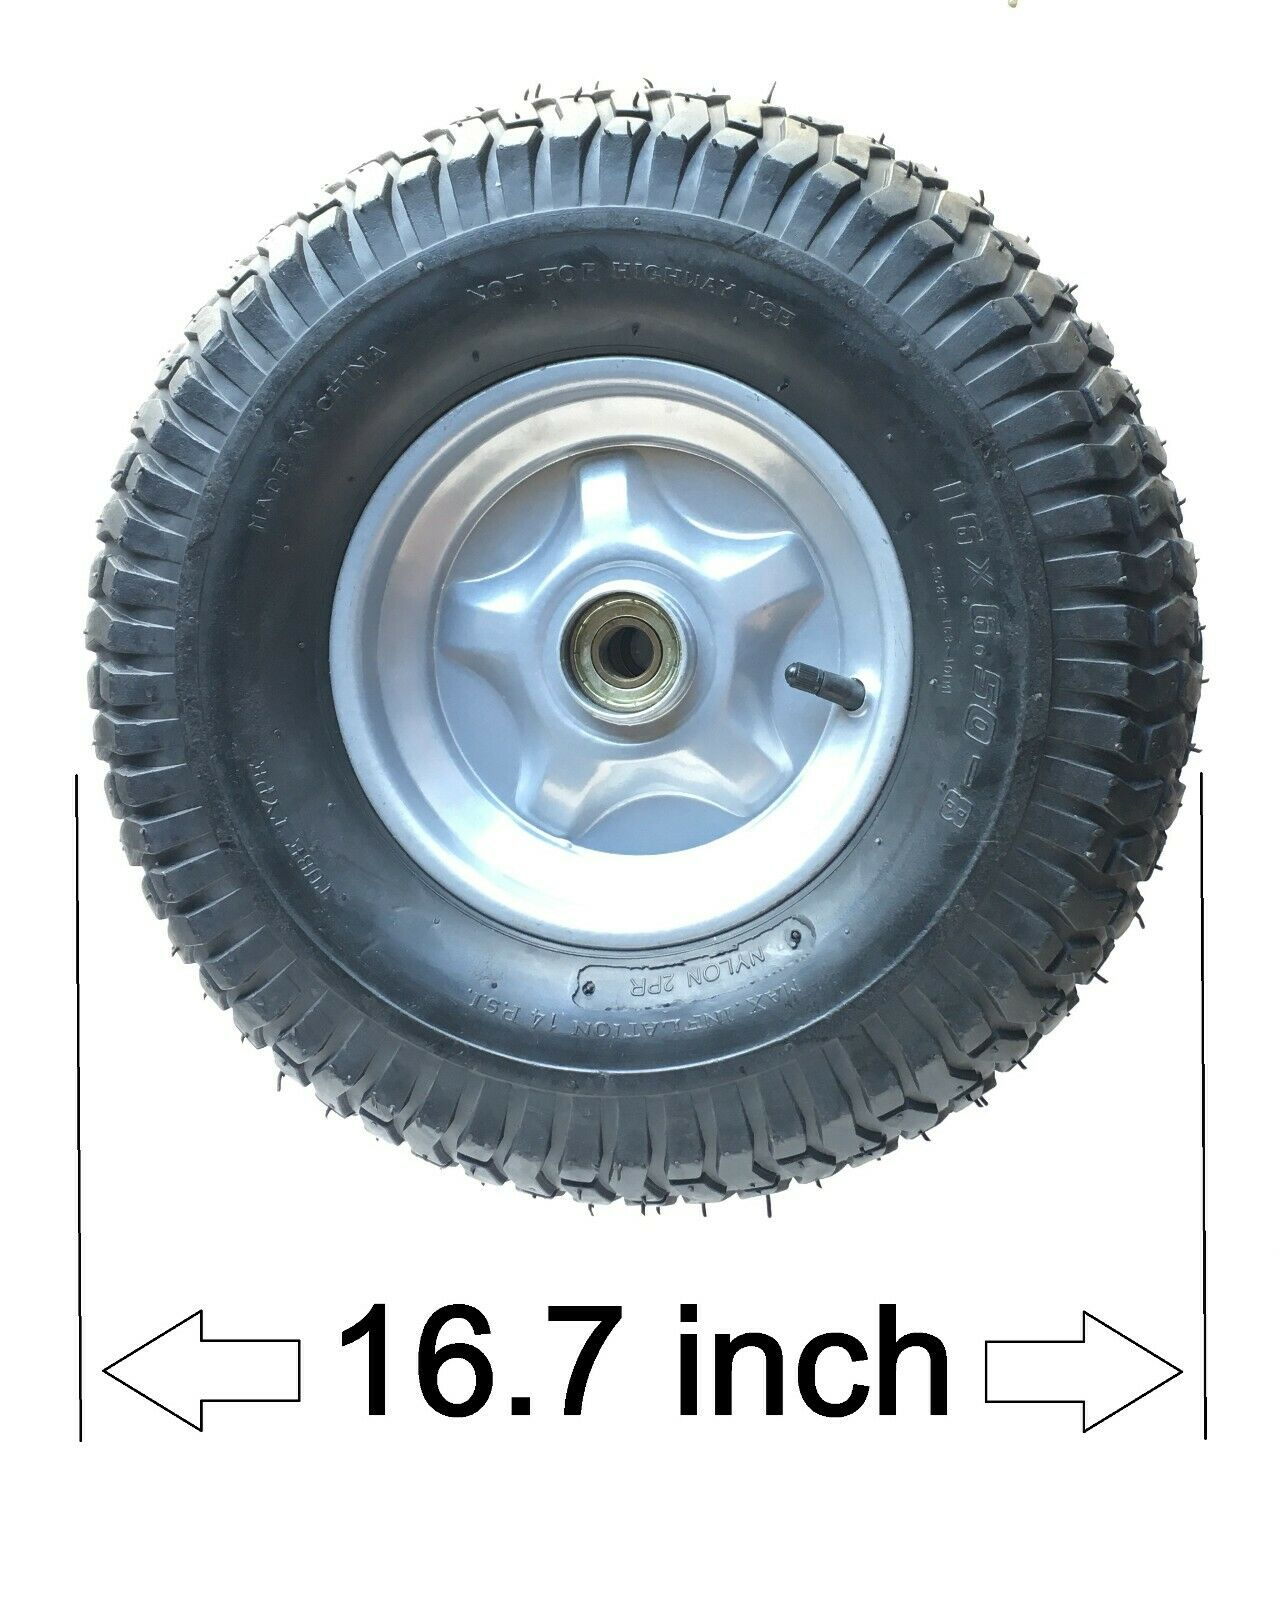 16X6.5 -8 Wheel 2-Ply Tire 14 PSI w/ Ball Bearing hub w drive plate for 20mm Shaft